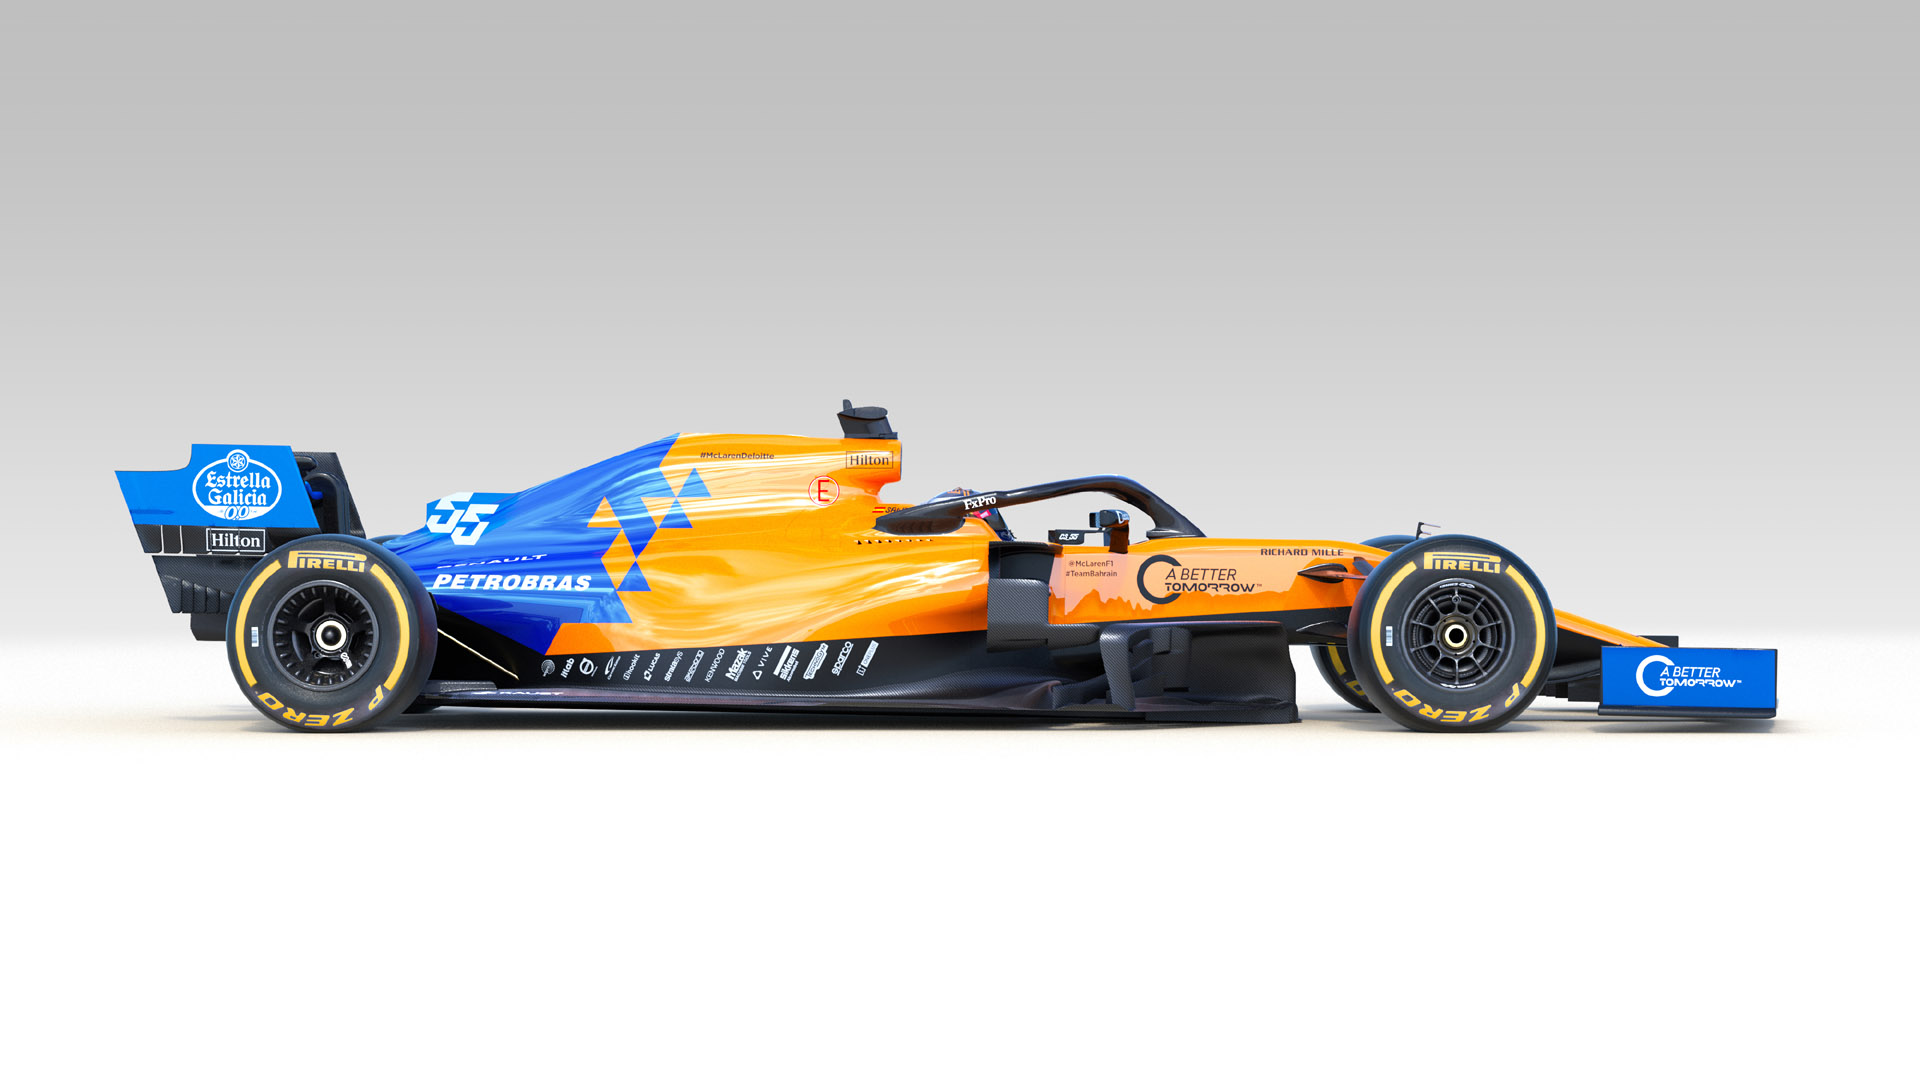 mclaren mcl34 gallery - all the angles of the teams 2019 f1 car